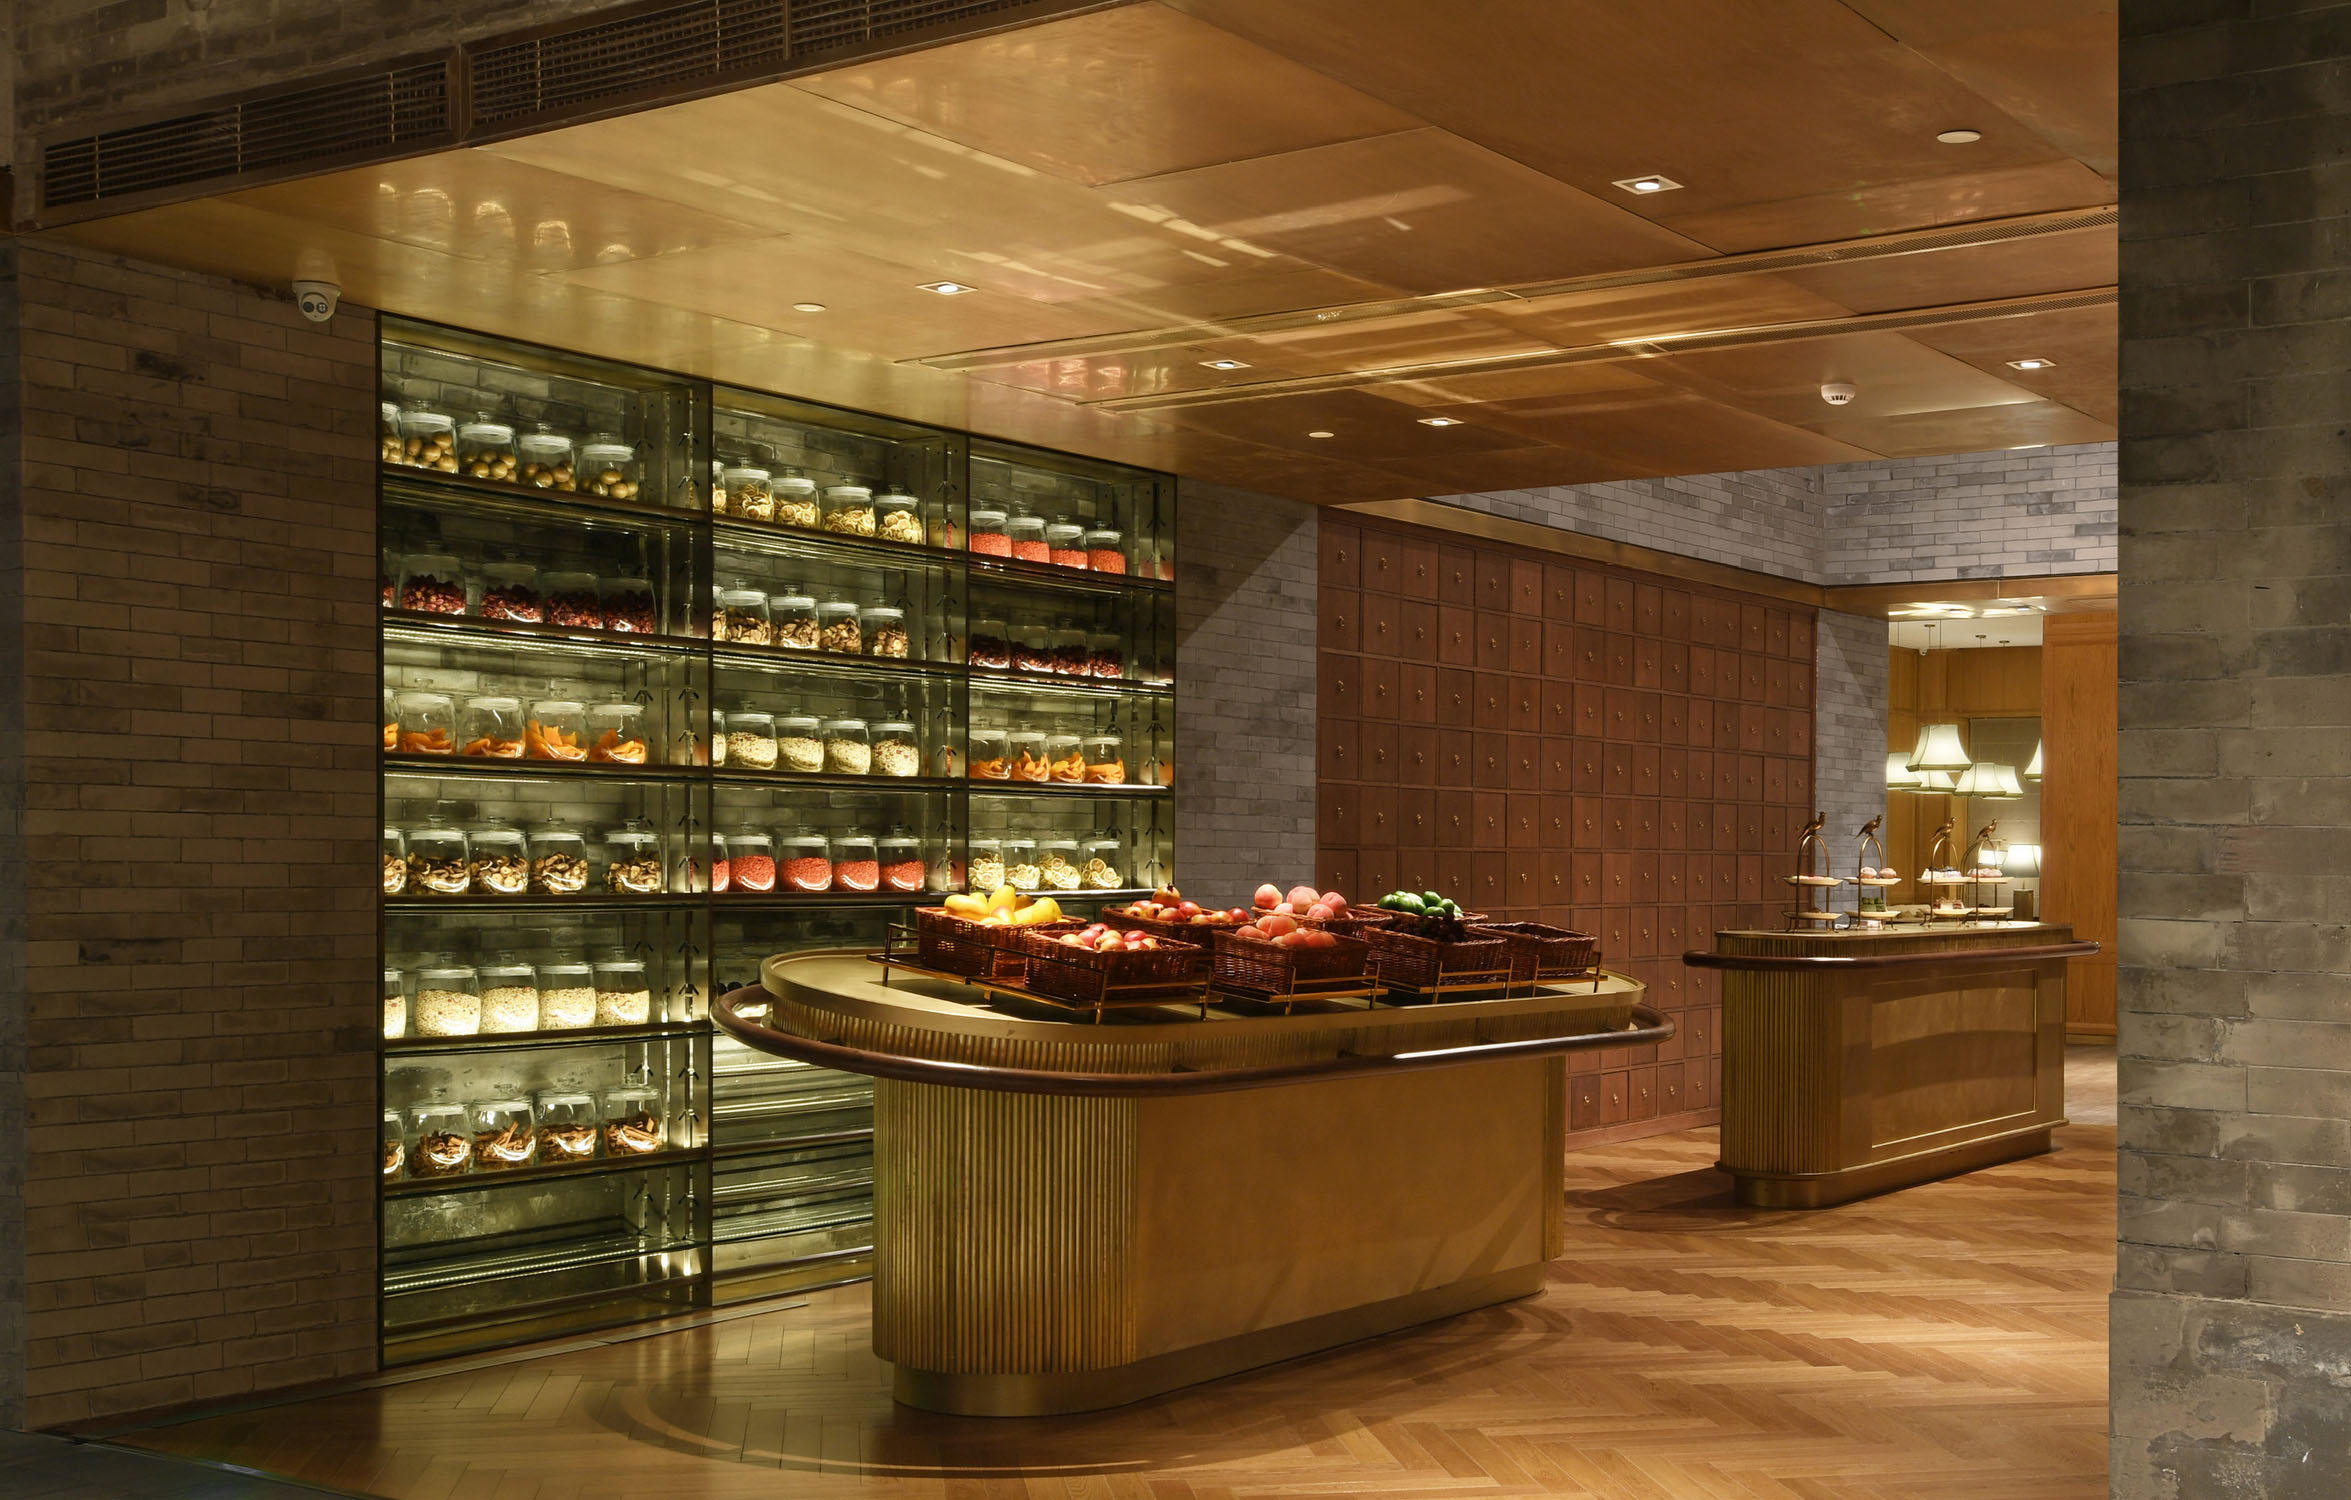 The display of the food and fruit stimulates the appetite at the entrance of the restaurant. Felix Zhenhua Luo